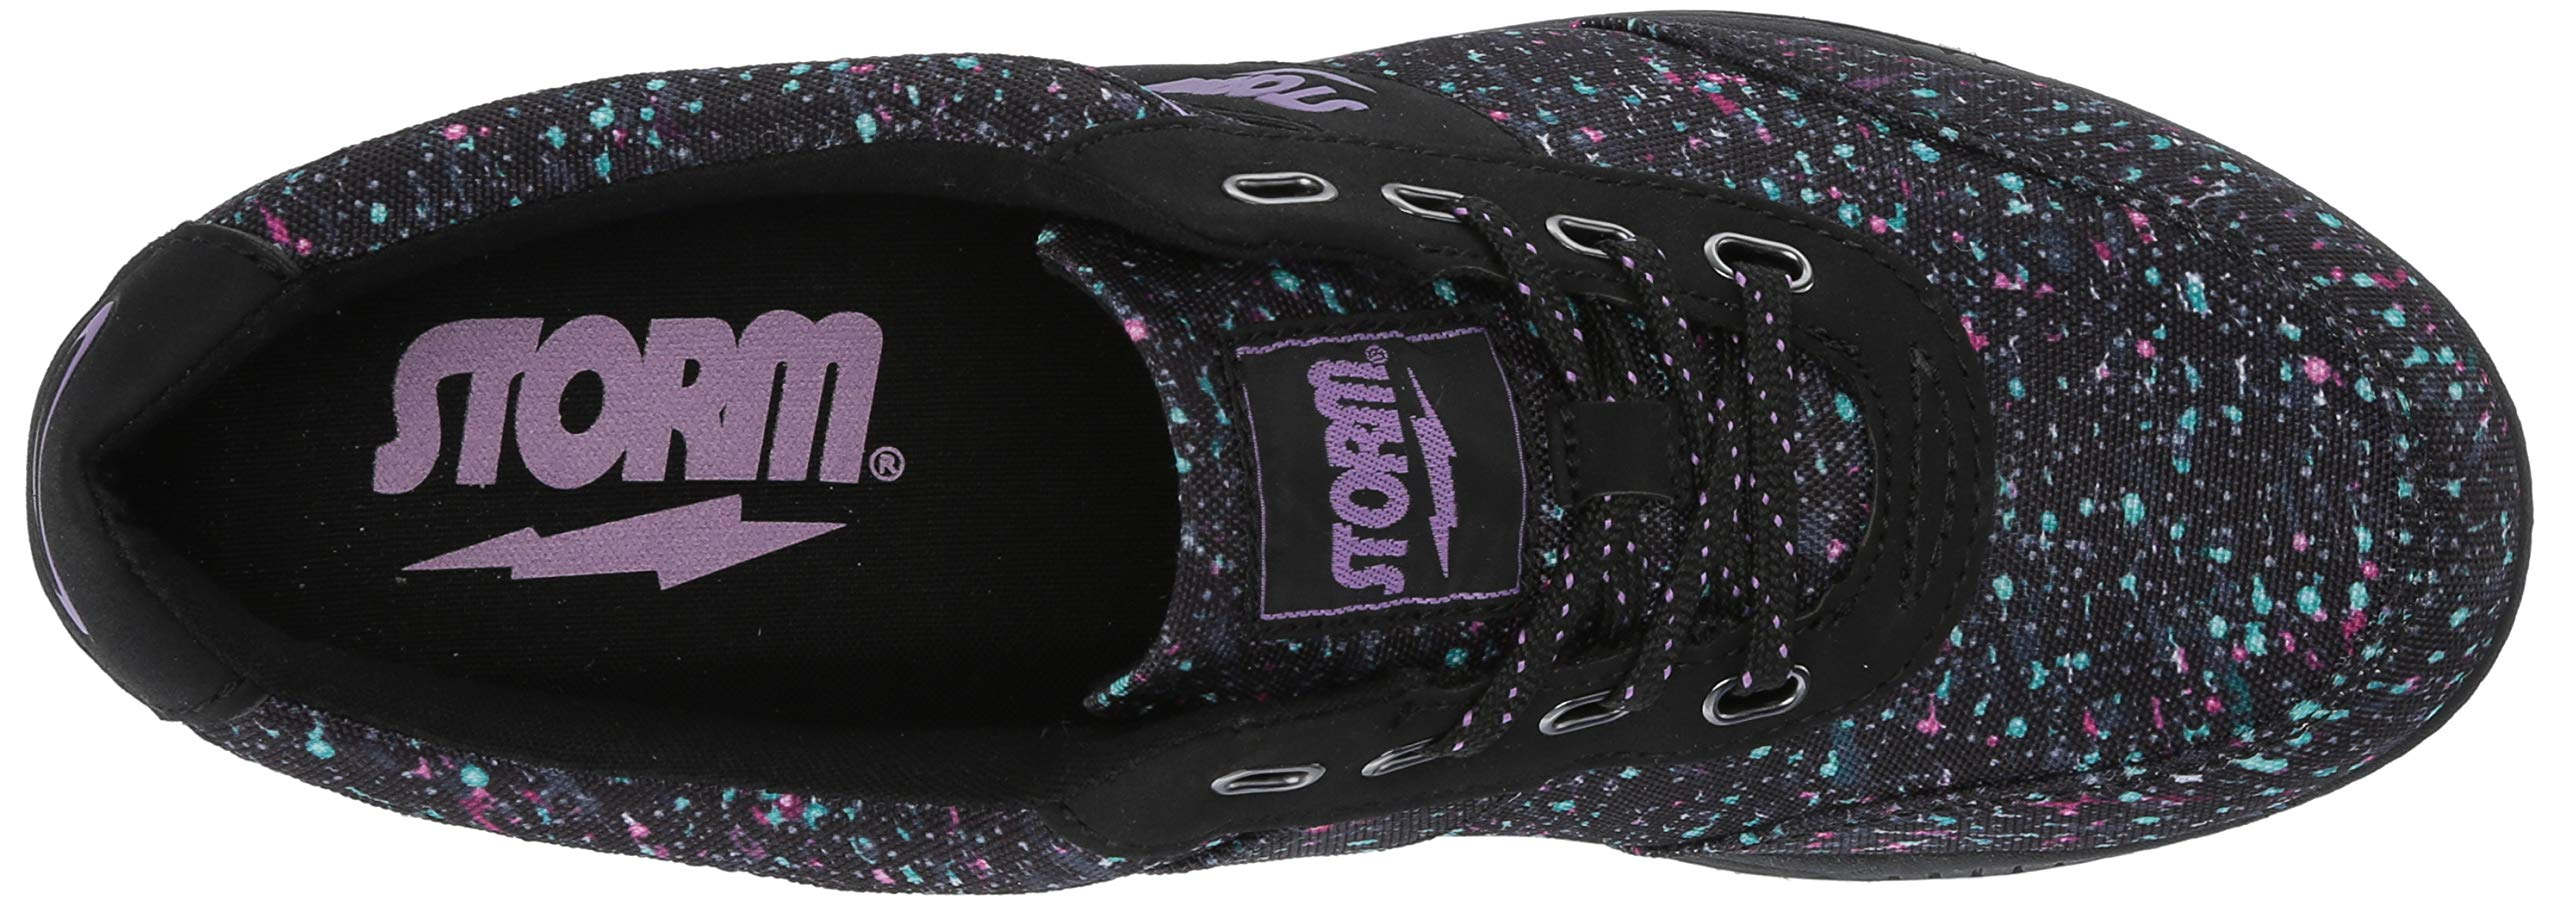 Storm SPSW0000399 060 Bowling Shoes, Multi Color, 6.0 by Storm (Image #8)